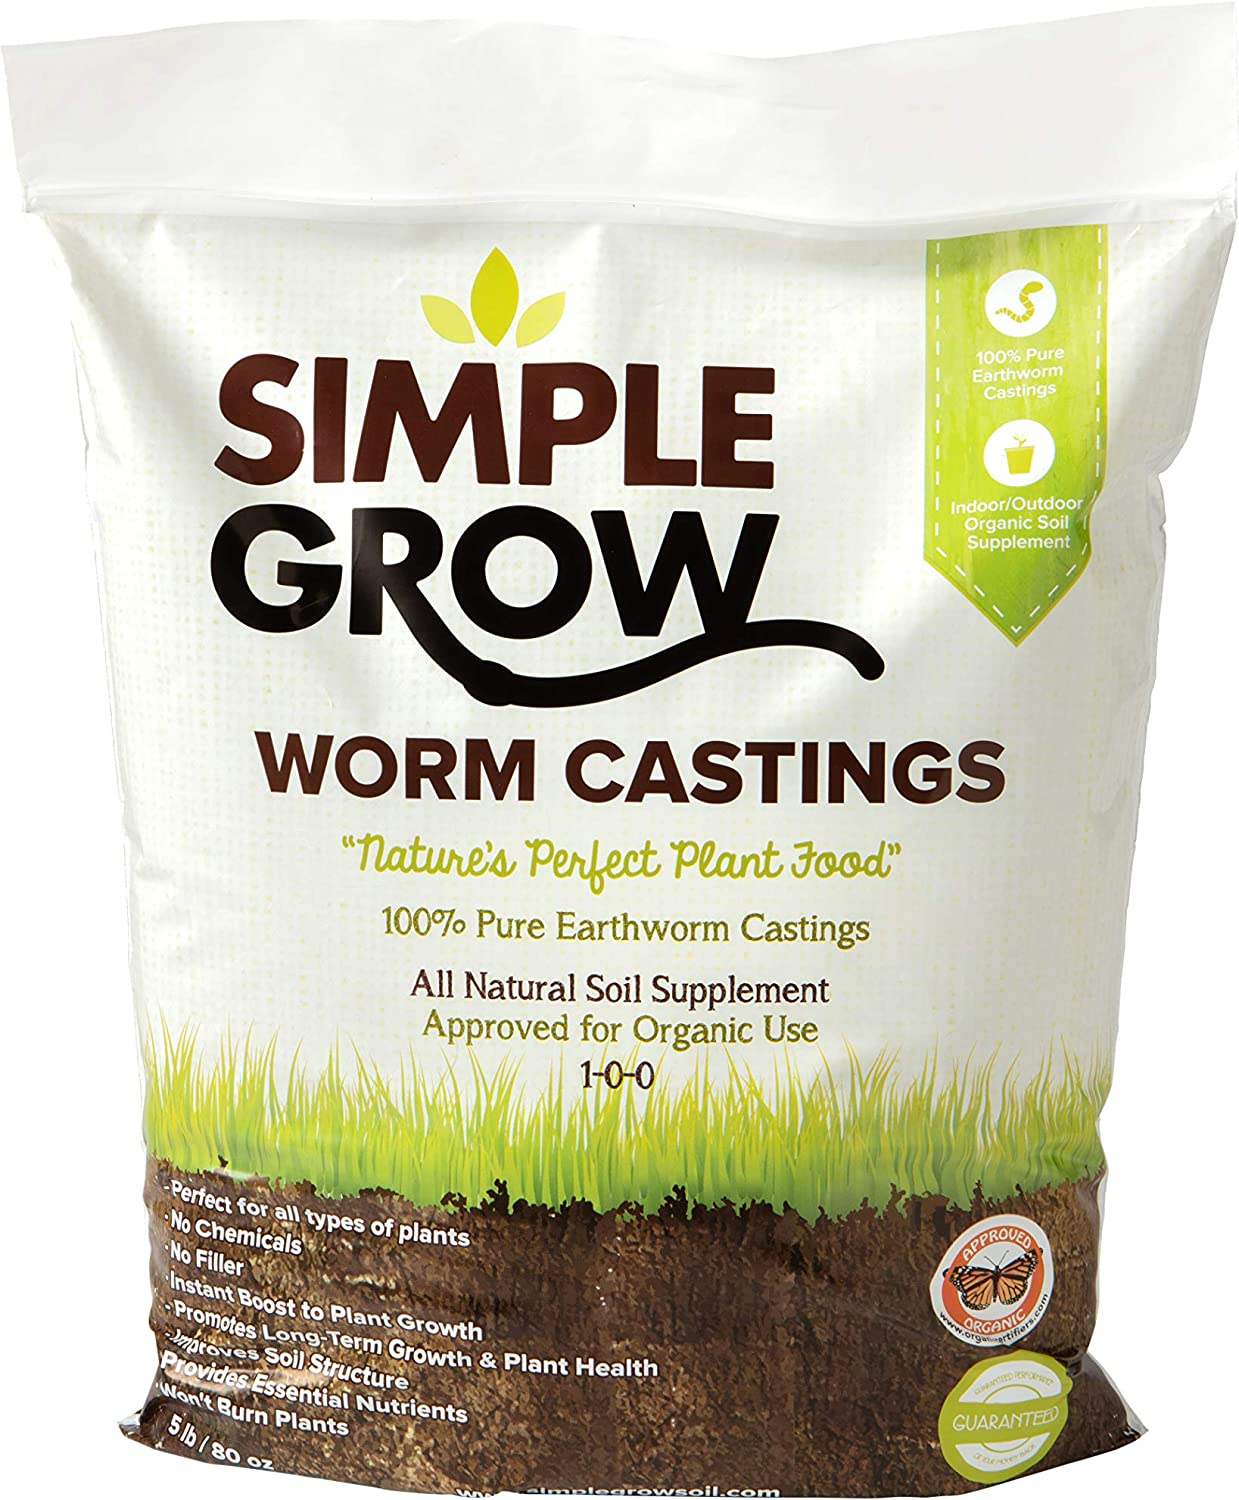 Simple Grow Worm Castings - Pure, Organic Fertilizer and Soil Supplement - 5 Pound Bag - Natural Soil Enhancer for Gardens, House Plants, Flowers, and Lawns - Odor Free